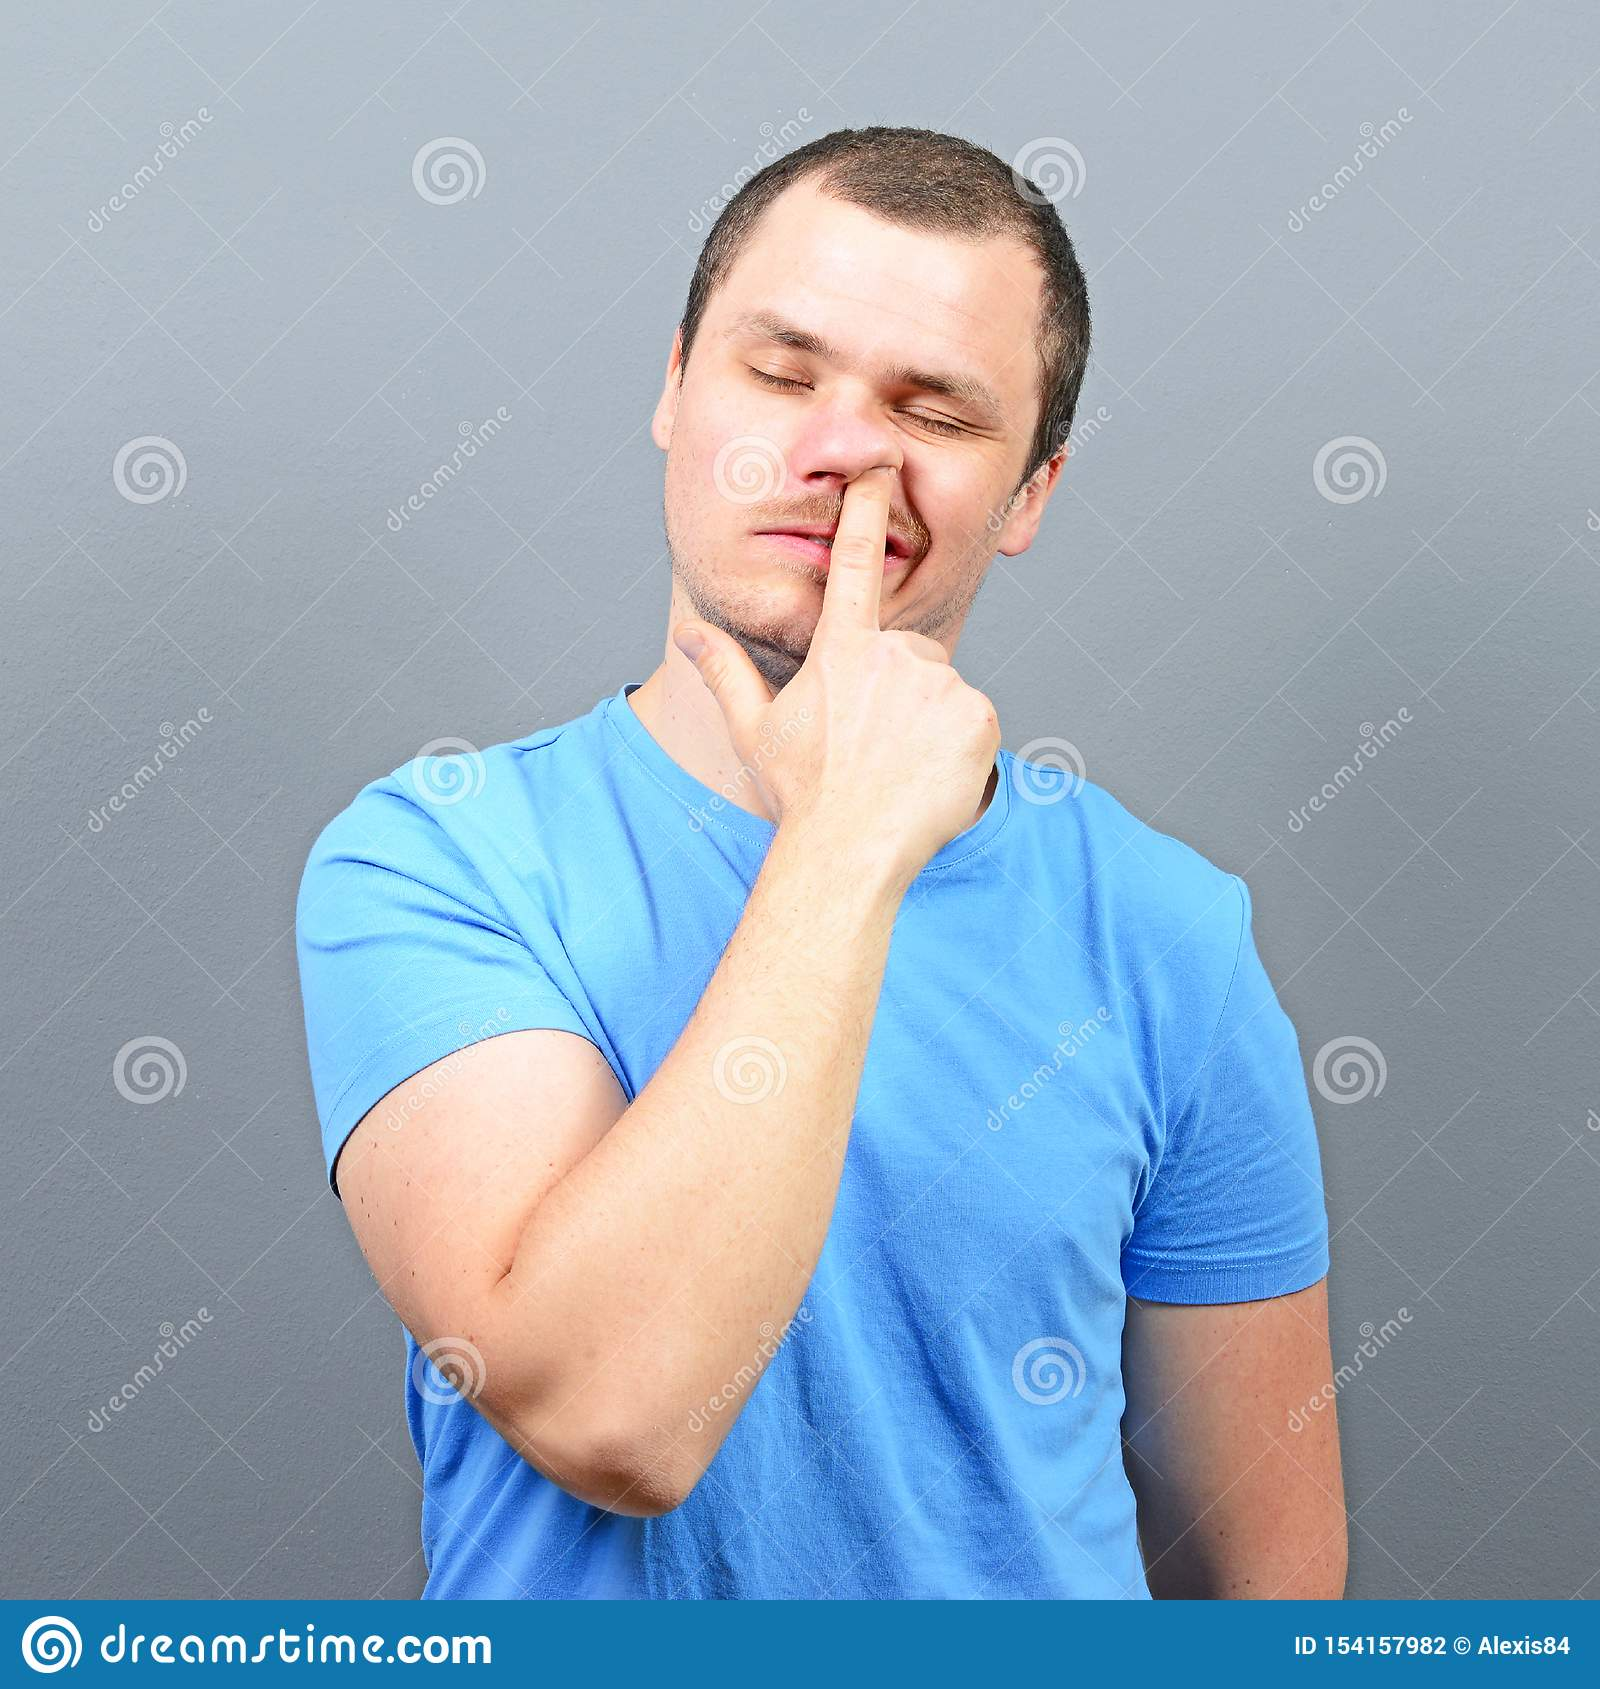 Man putting finger deep in his nose - Bad habit concept